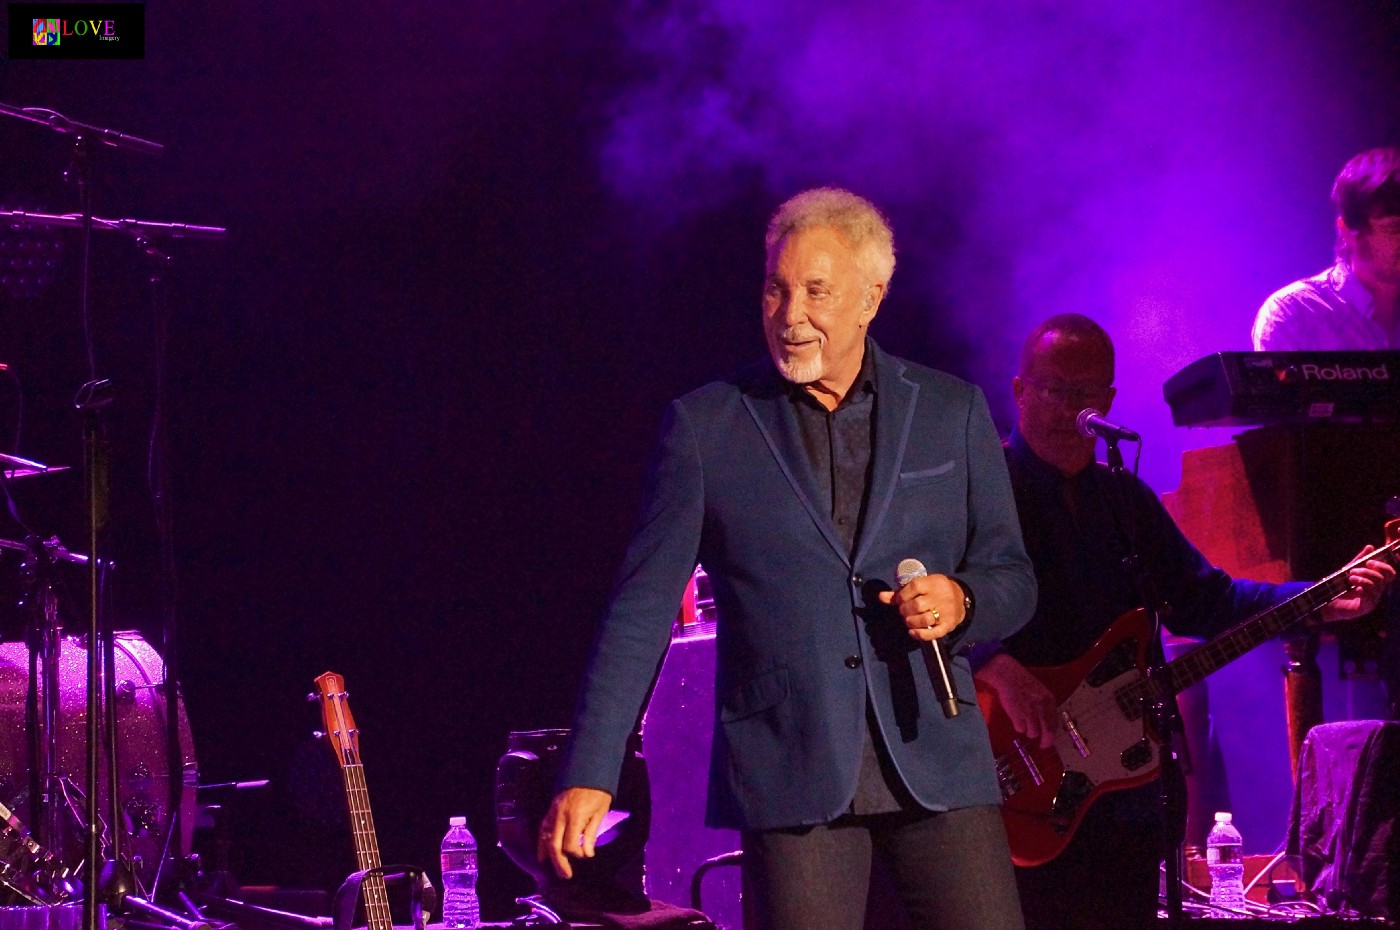 "One of the Best Concerts I've Ever Seen!"" Tom Jones LIVE! at BergenPAC"